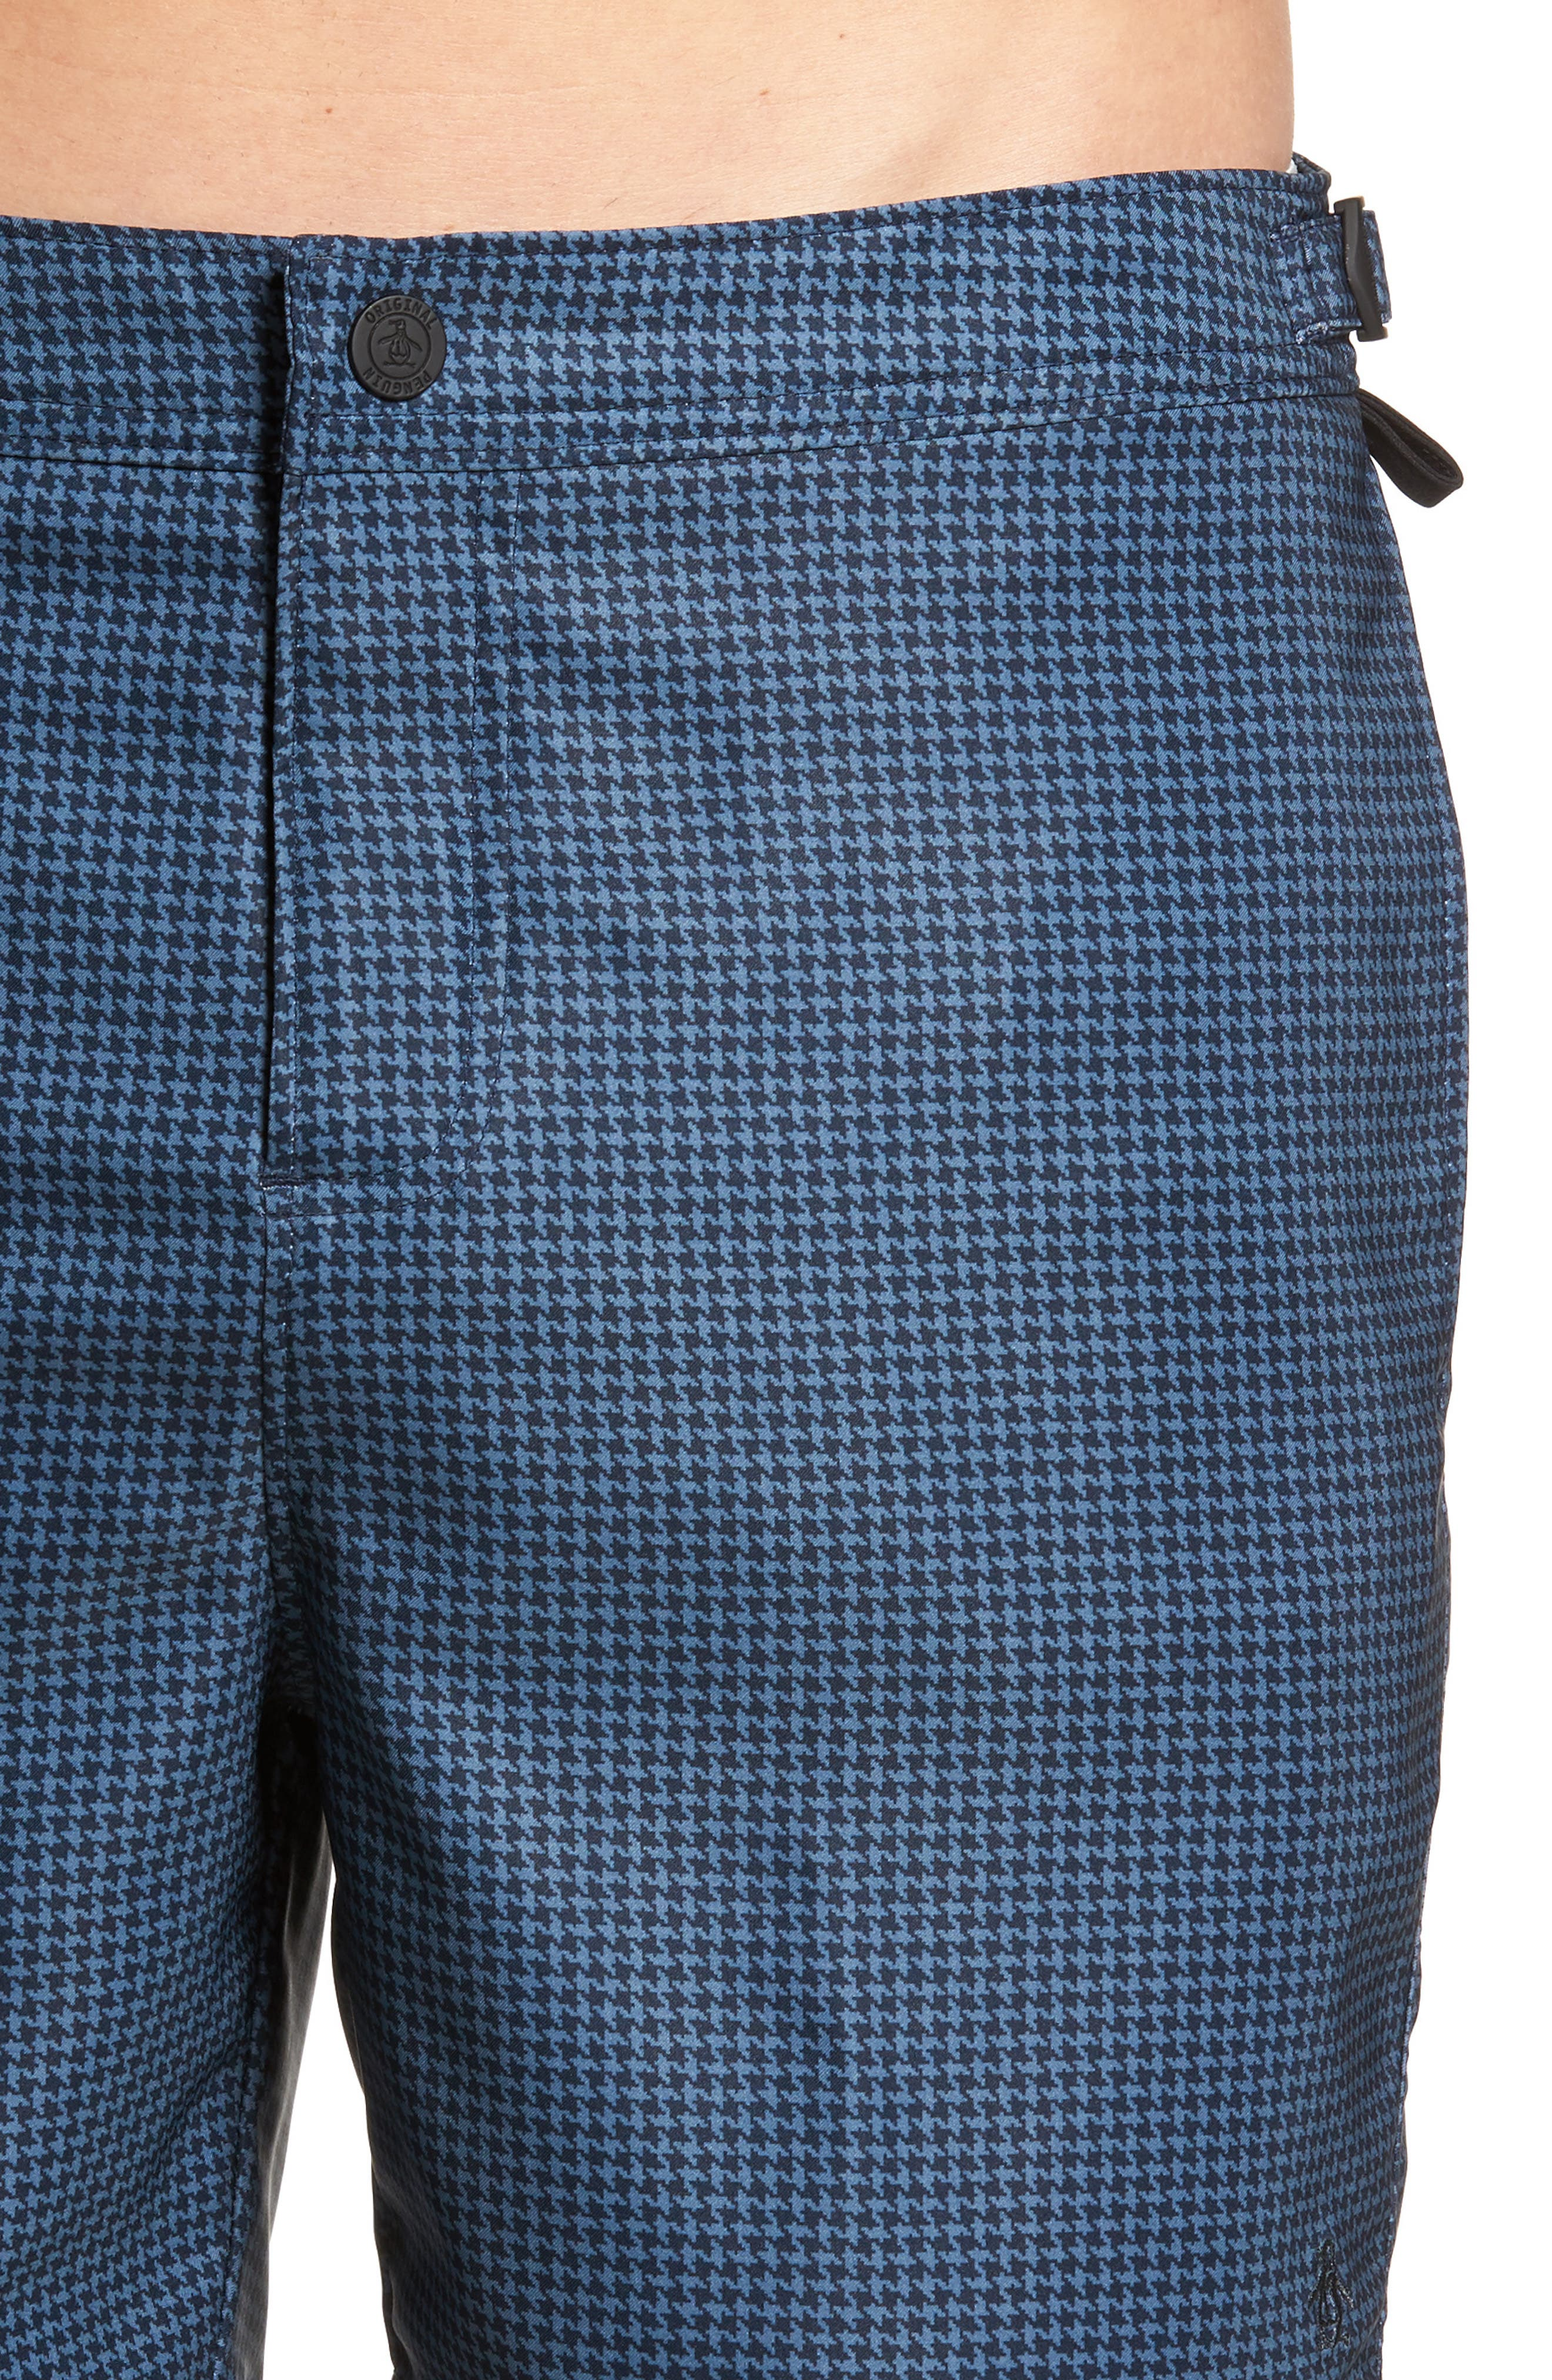 Houndstooth Stretch Volley Board Shorts,                             Alternate thumbnail 4, color,